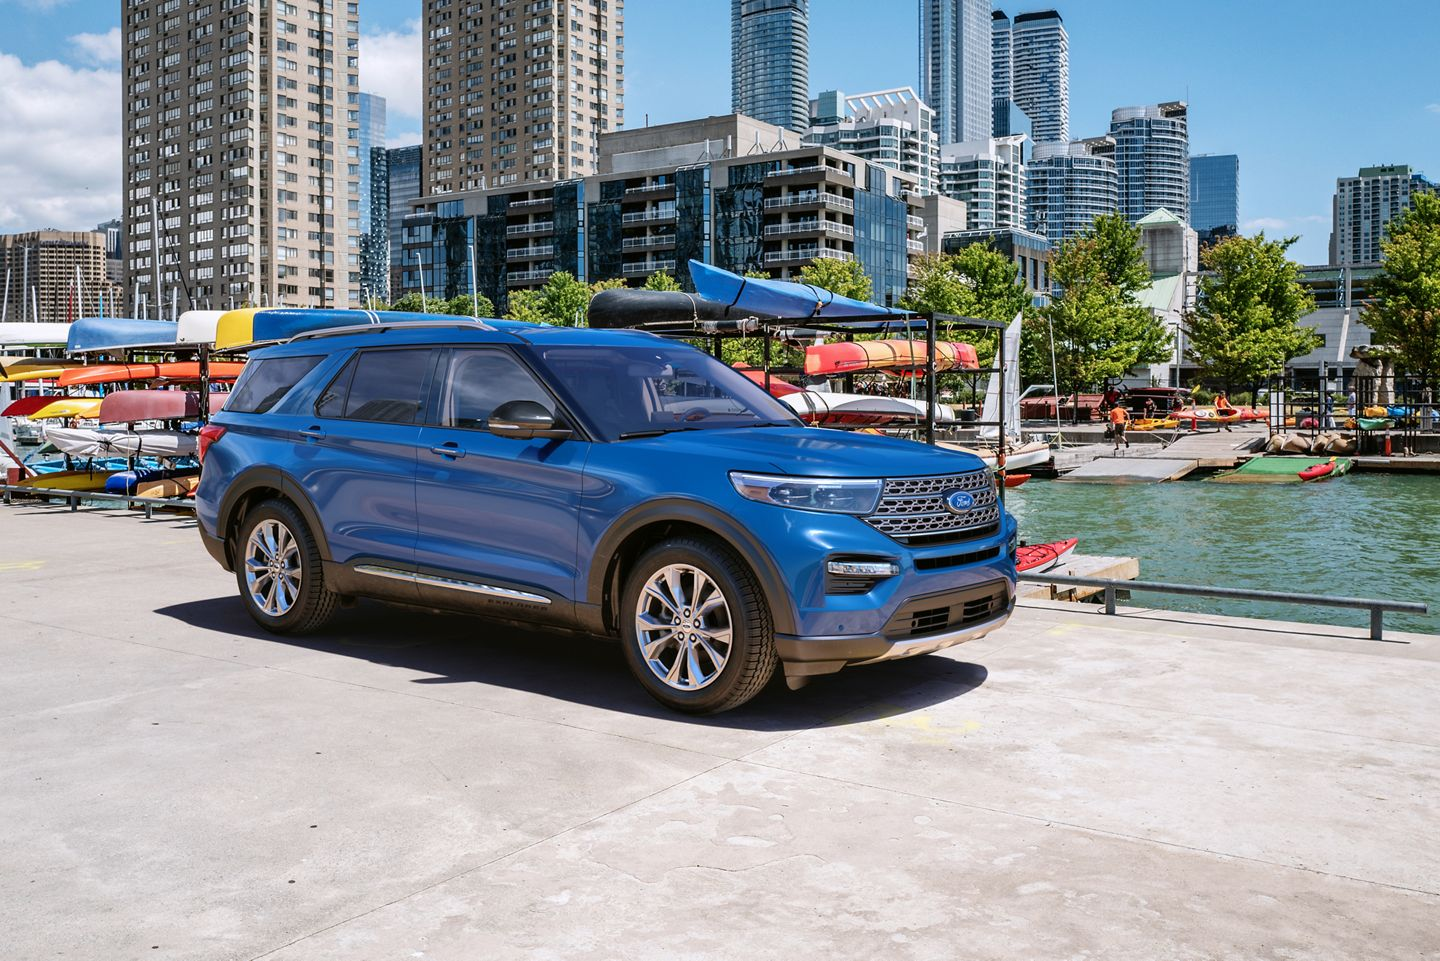 2020 Ford Explorer Blue Exterior Side Picture